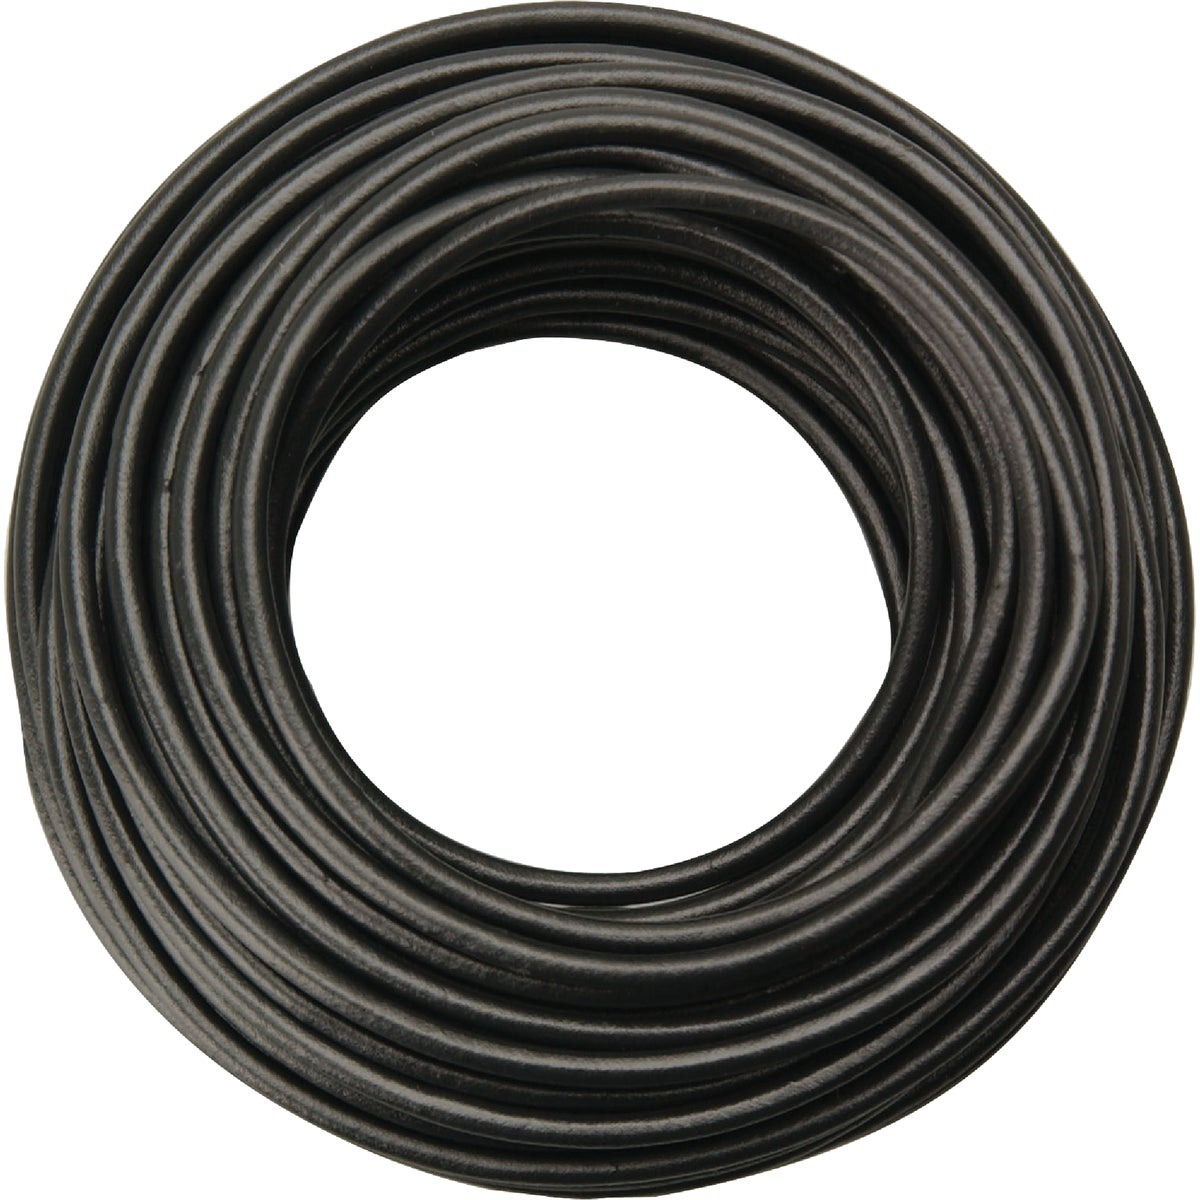 11' 12GA BLK AUTO WIRE - 12-1-11 by Woods Wire Coleman